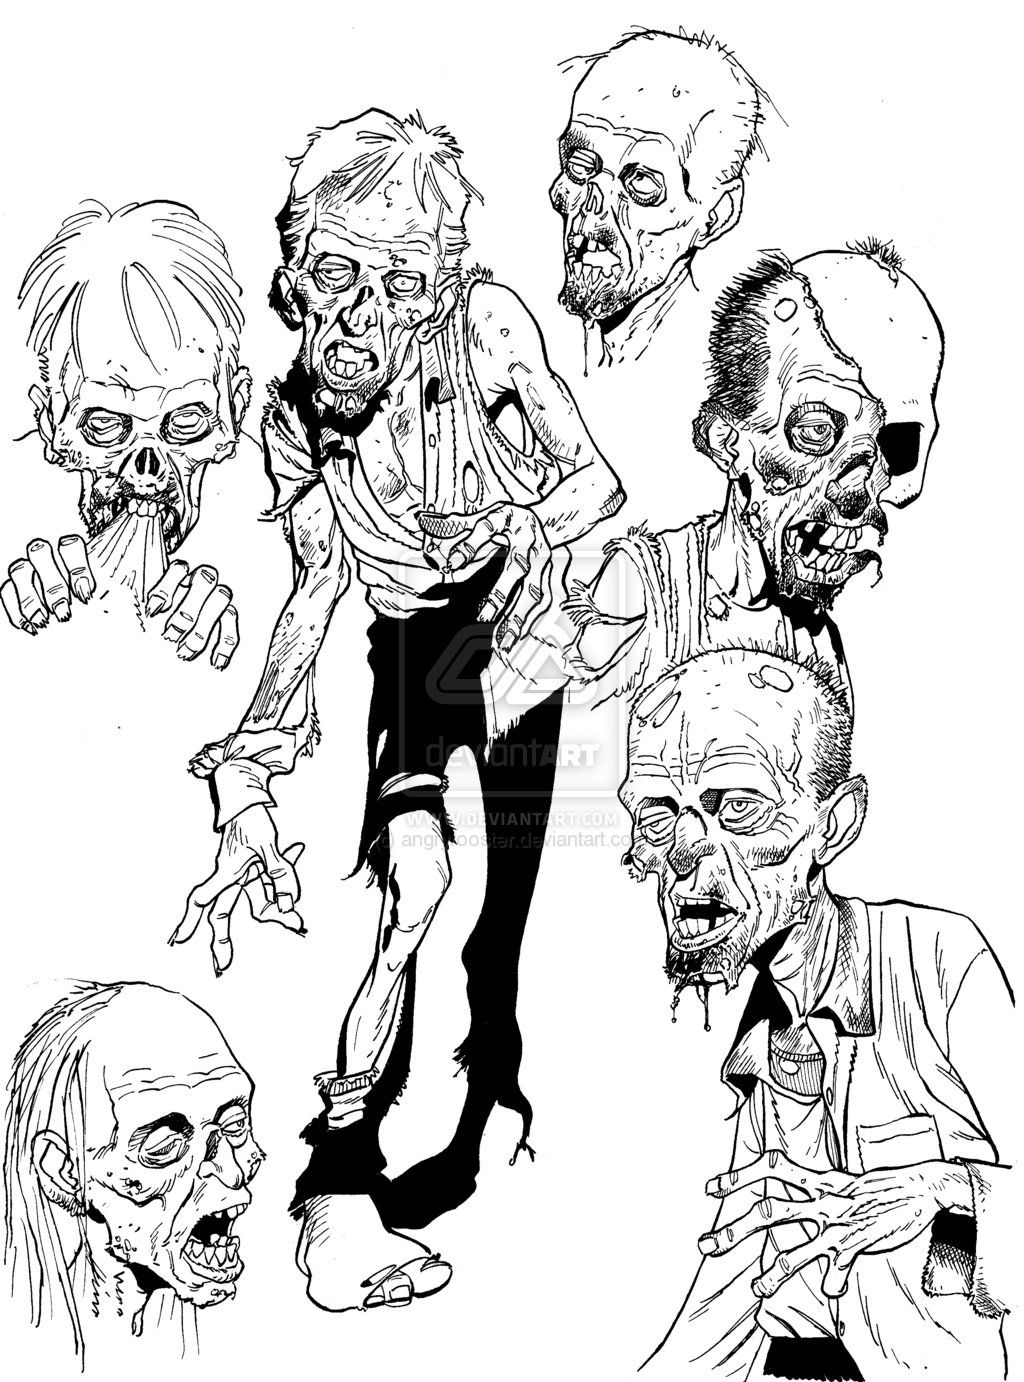 zombie sketch stuff adult coloringcoloring pagescoloring - Scary Zombie Coloring Pages